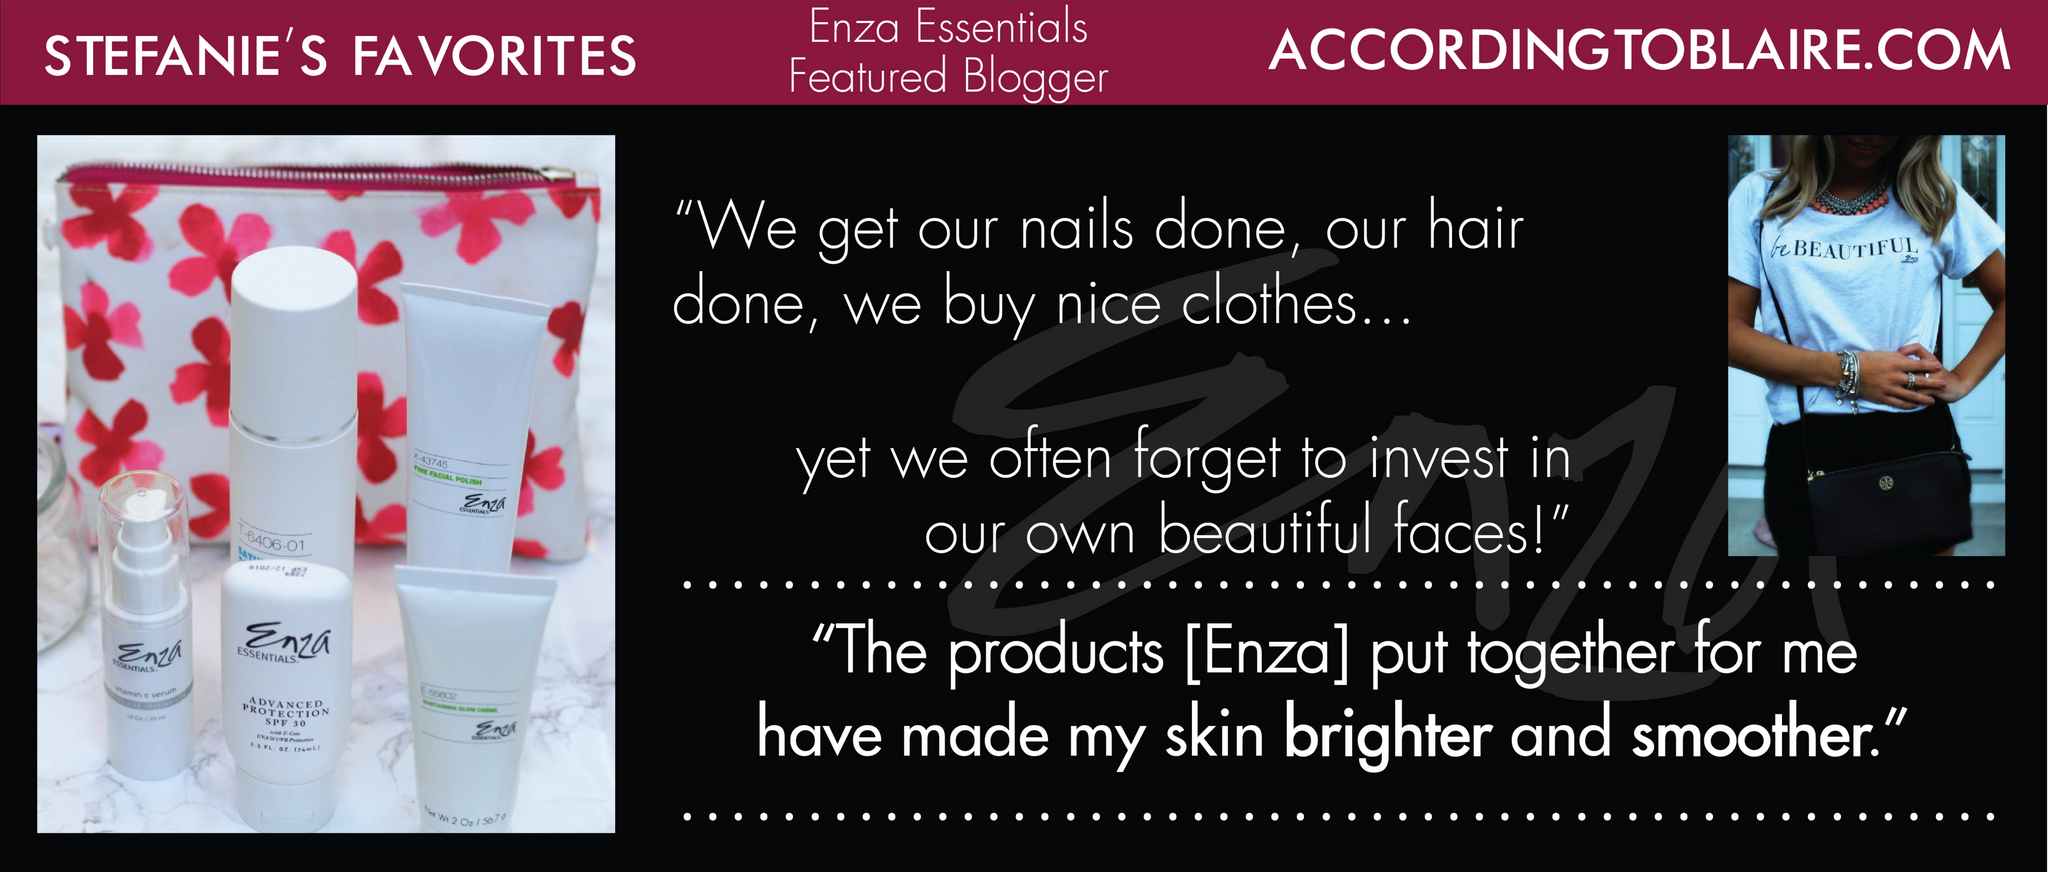 According to Blaire Stefanie's Enza Essentials Review